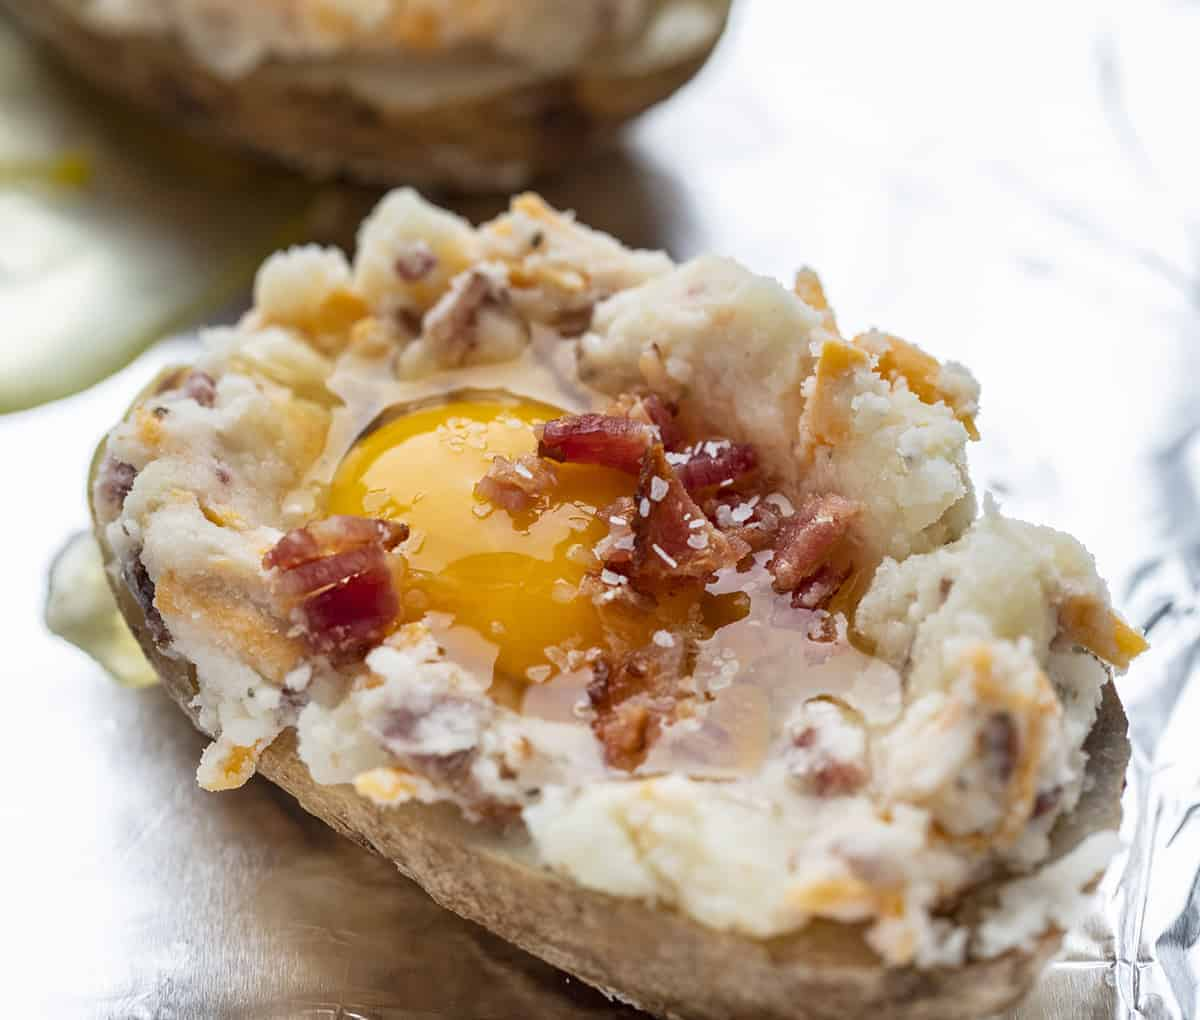 Preparing Twice Baked Potato with Raw Egg and Bacon